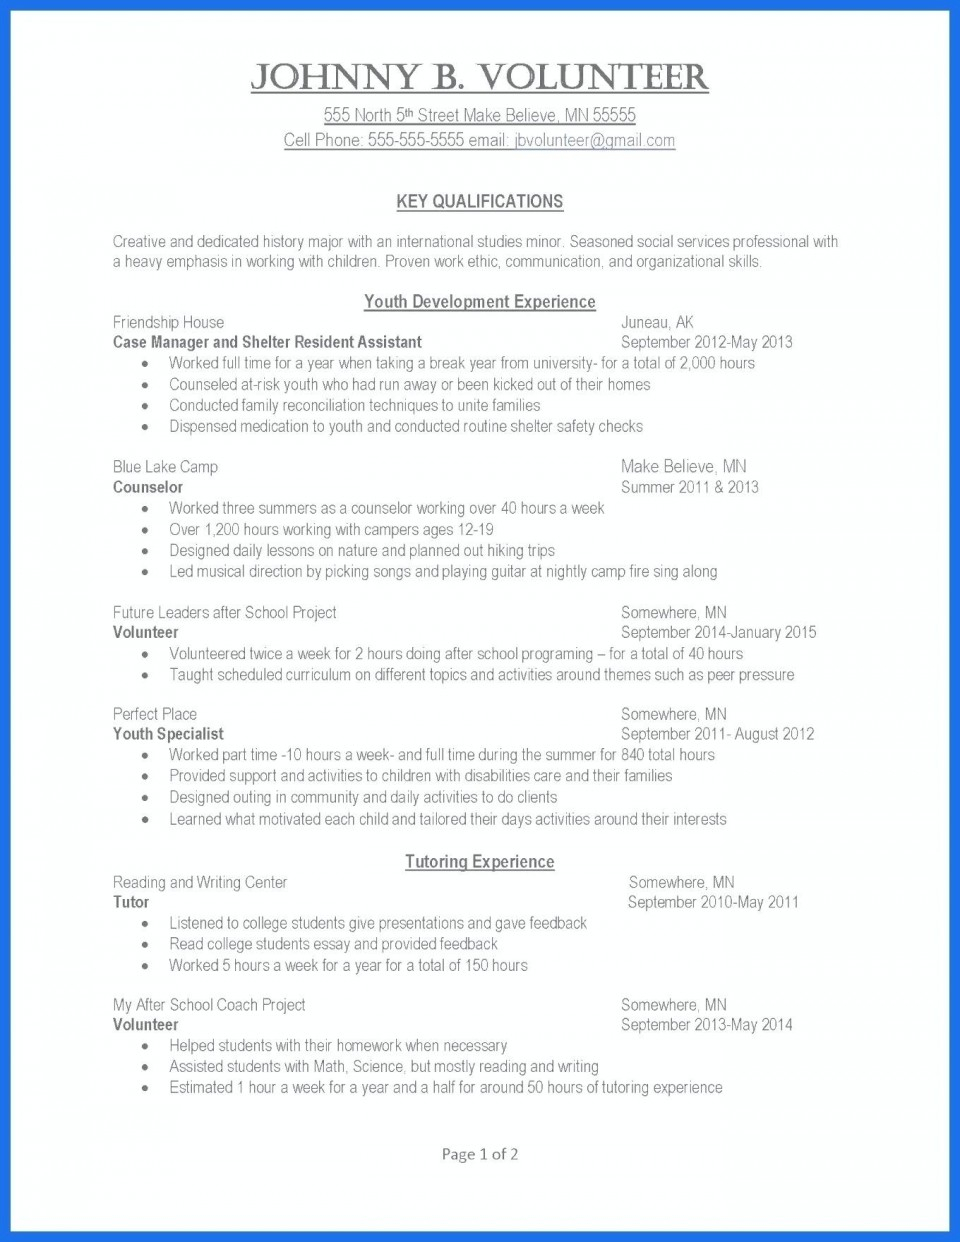 030 Budget Worksheet Commercial Construction 20Project pertaining to Camp Schedule Template